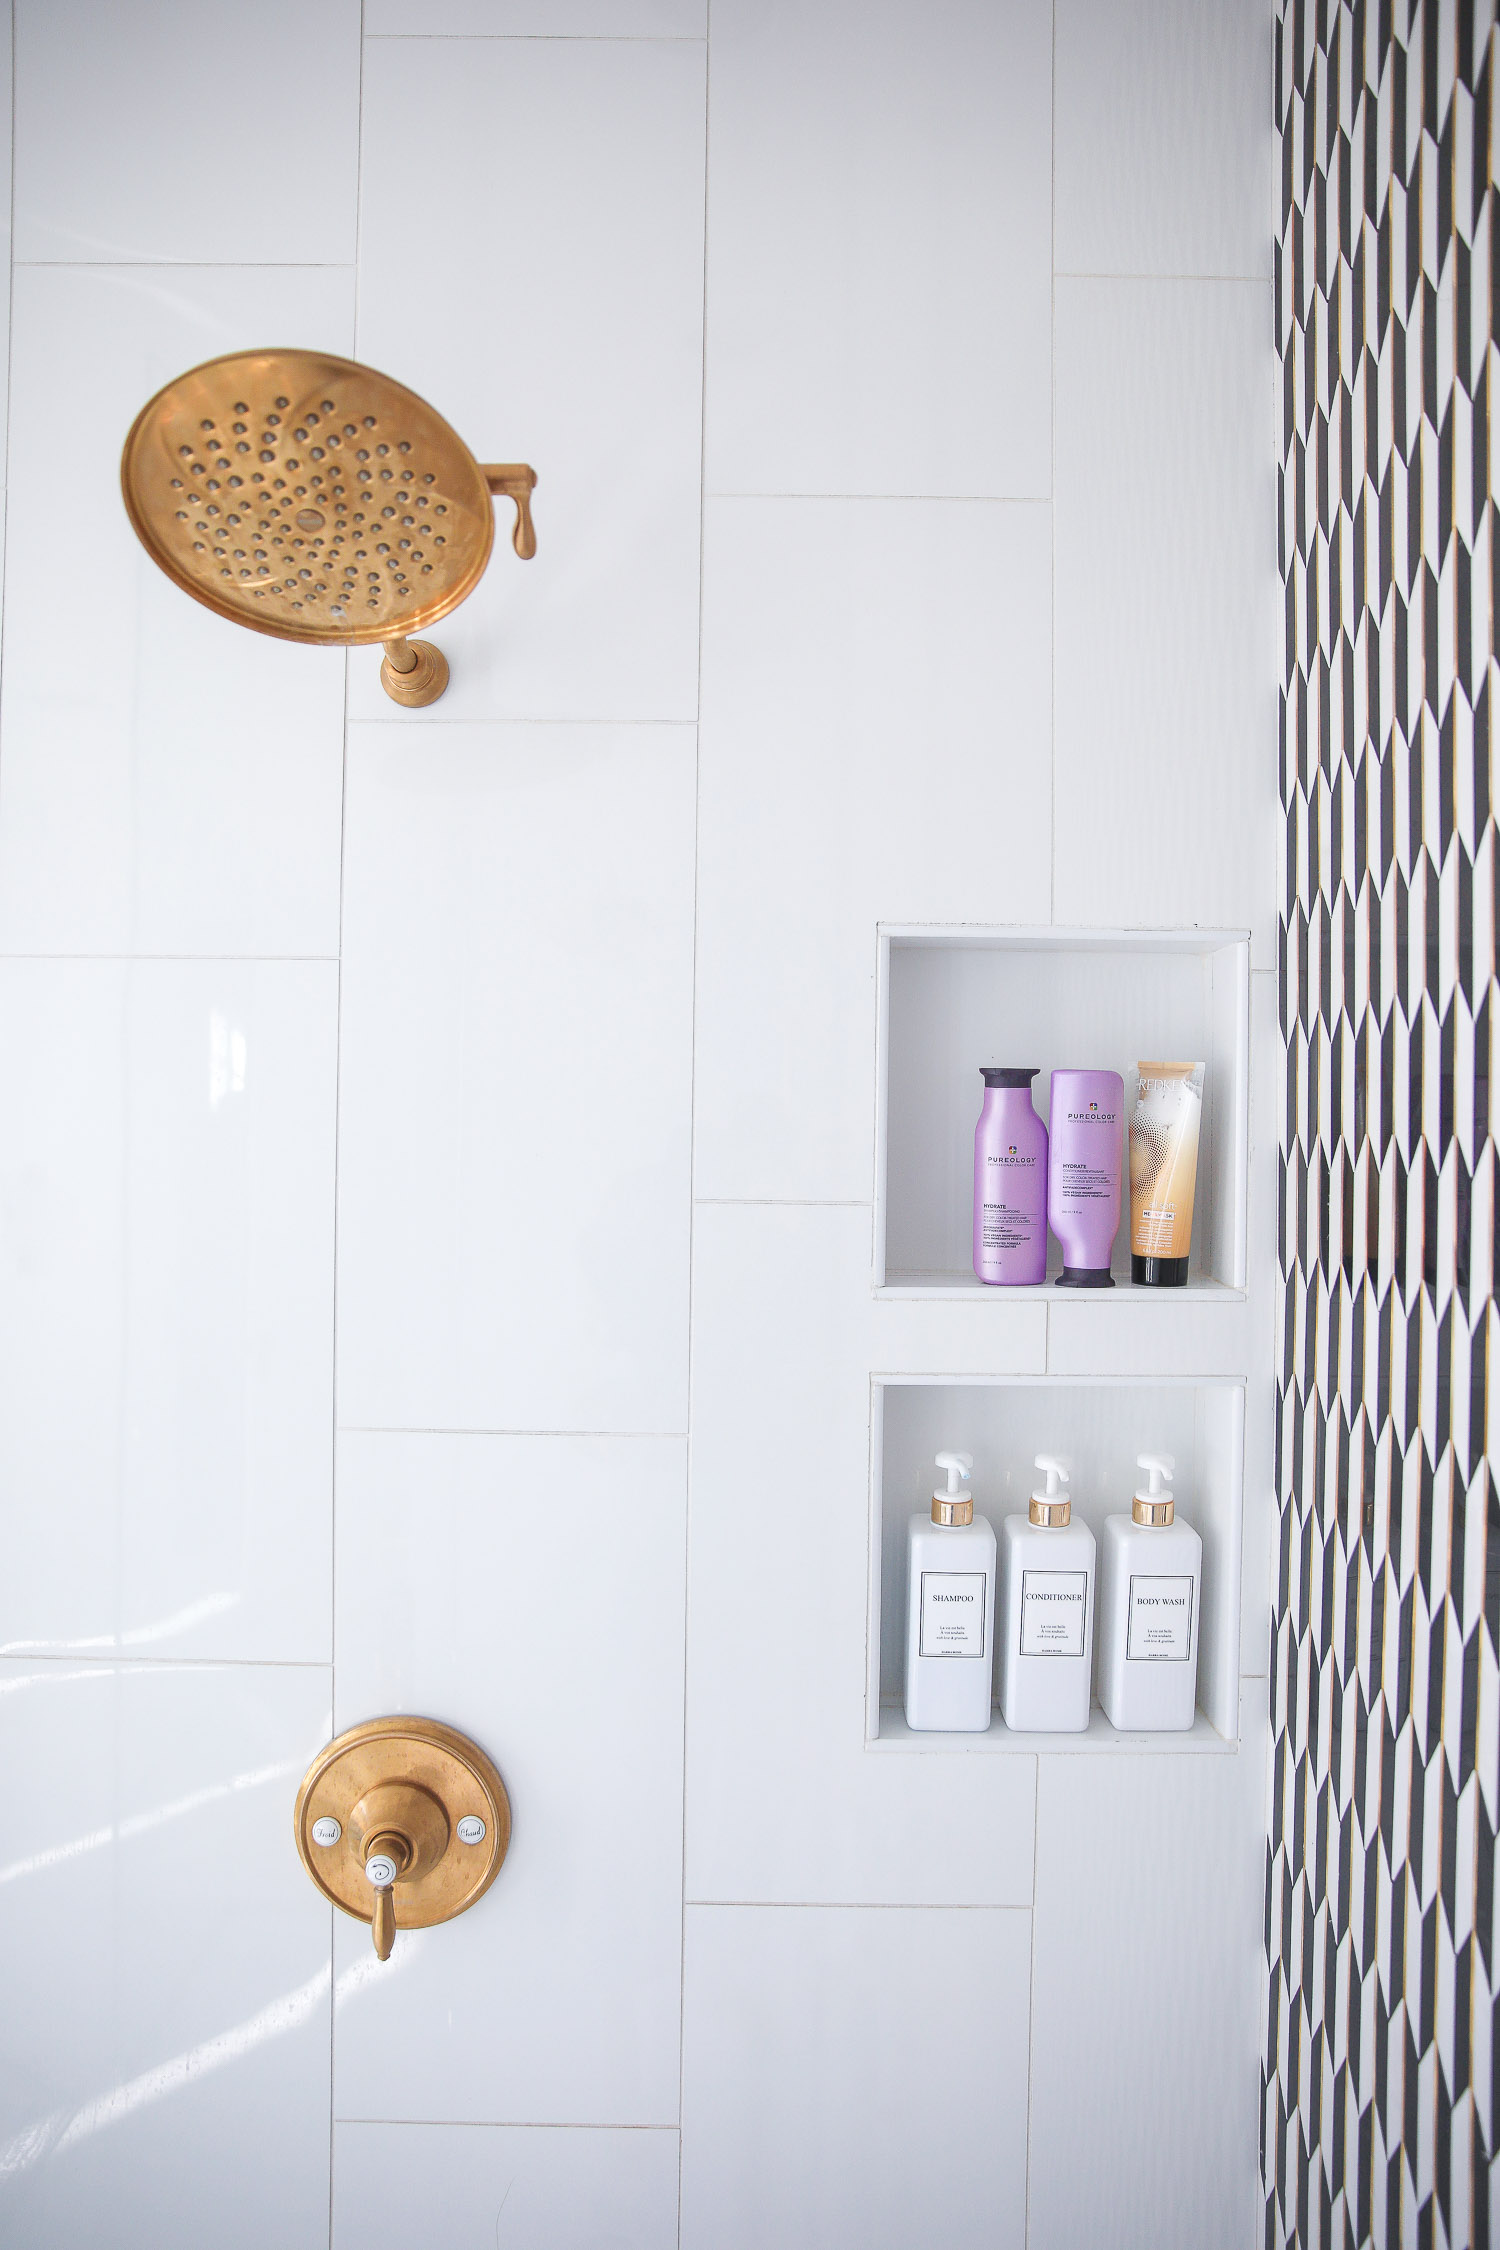 hair dot com, best hair products for long hair and extensions, Purology shampoo and conditioner, emily gemma, the sweetest thing blog |Hair Products by popular US beauty blog, The Sweetest Thing: image of a walk-in shower stocked with Pureology and Dae hair products.